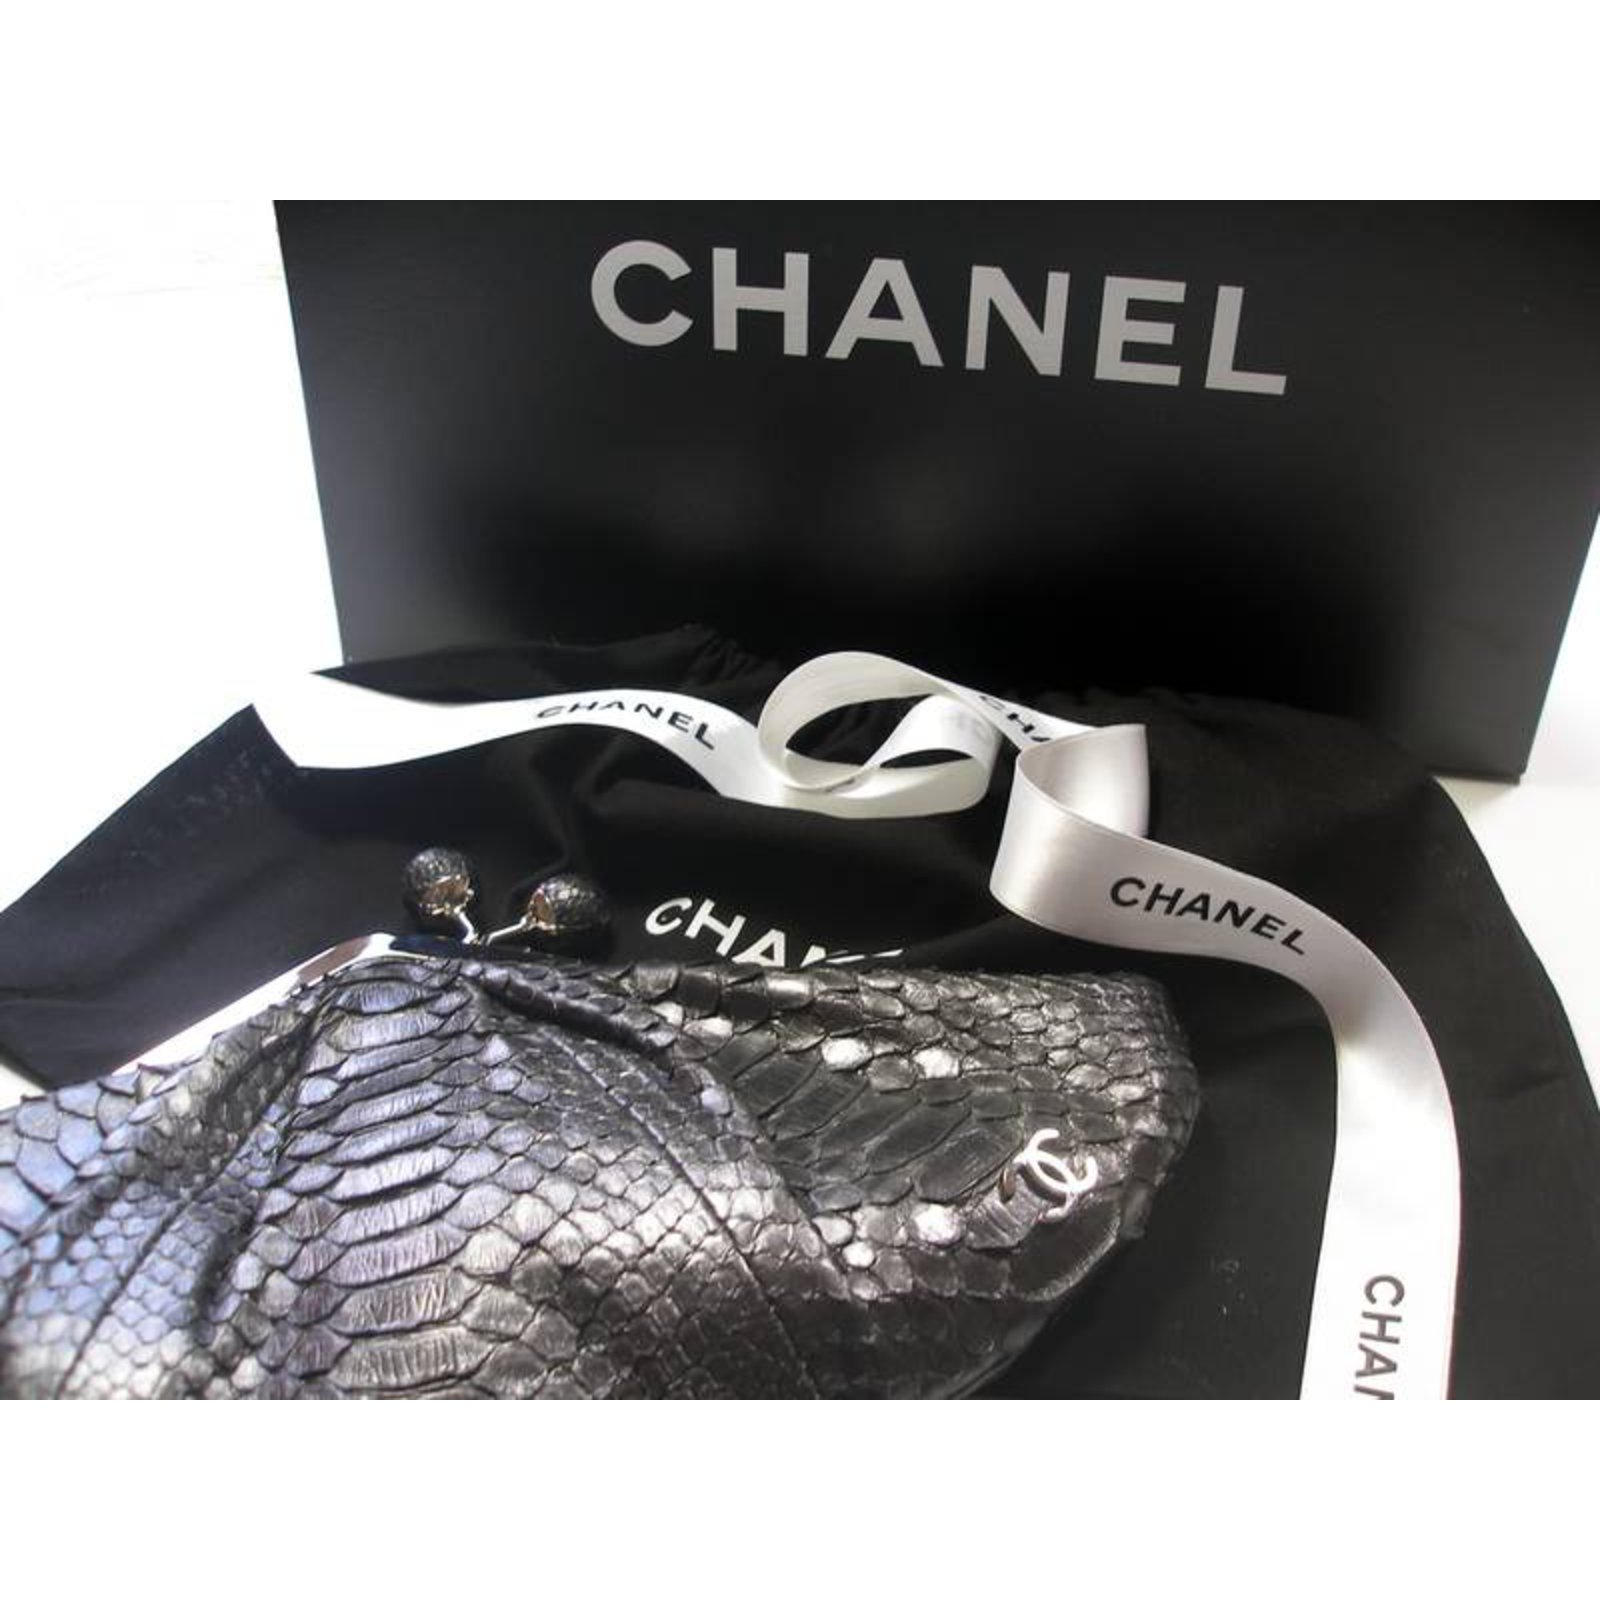 Chanel Python clutch limited edition Clutch bags Exotic leather Dark grey  ref.27013 - Joli Closet 1ca094e7d6a43